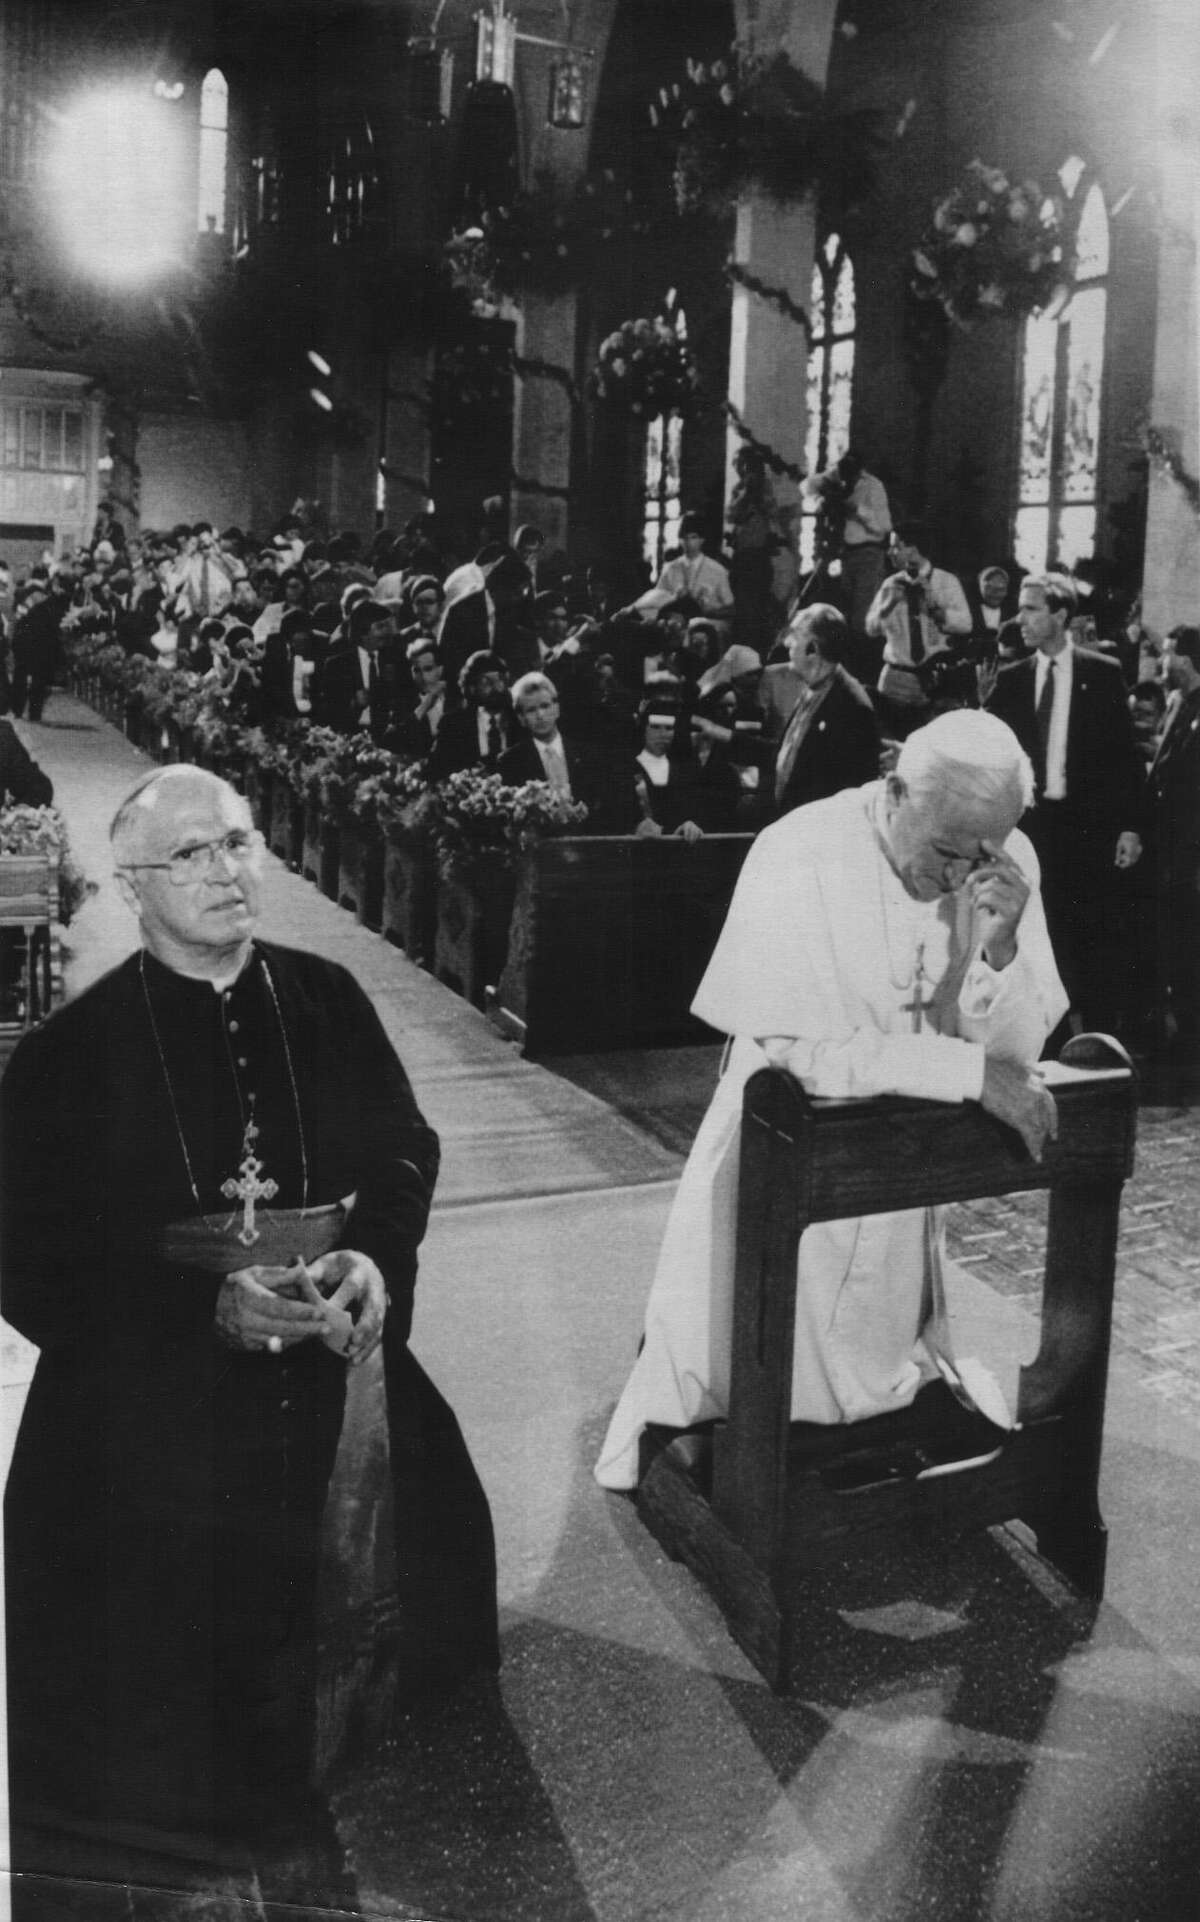 Archbishop Flores and Pope John Paul II pray at the altar at San Fernando Cathedral during his visit in San Antonio Sept 13, 1987. The pope met with seminarian candidates for religious orders at the cathedral.